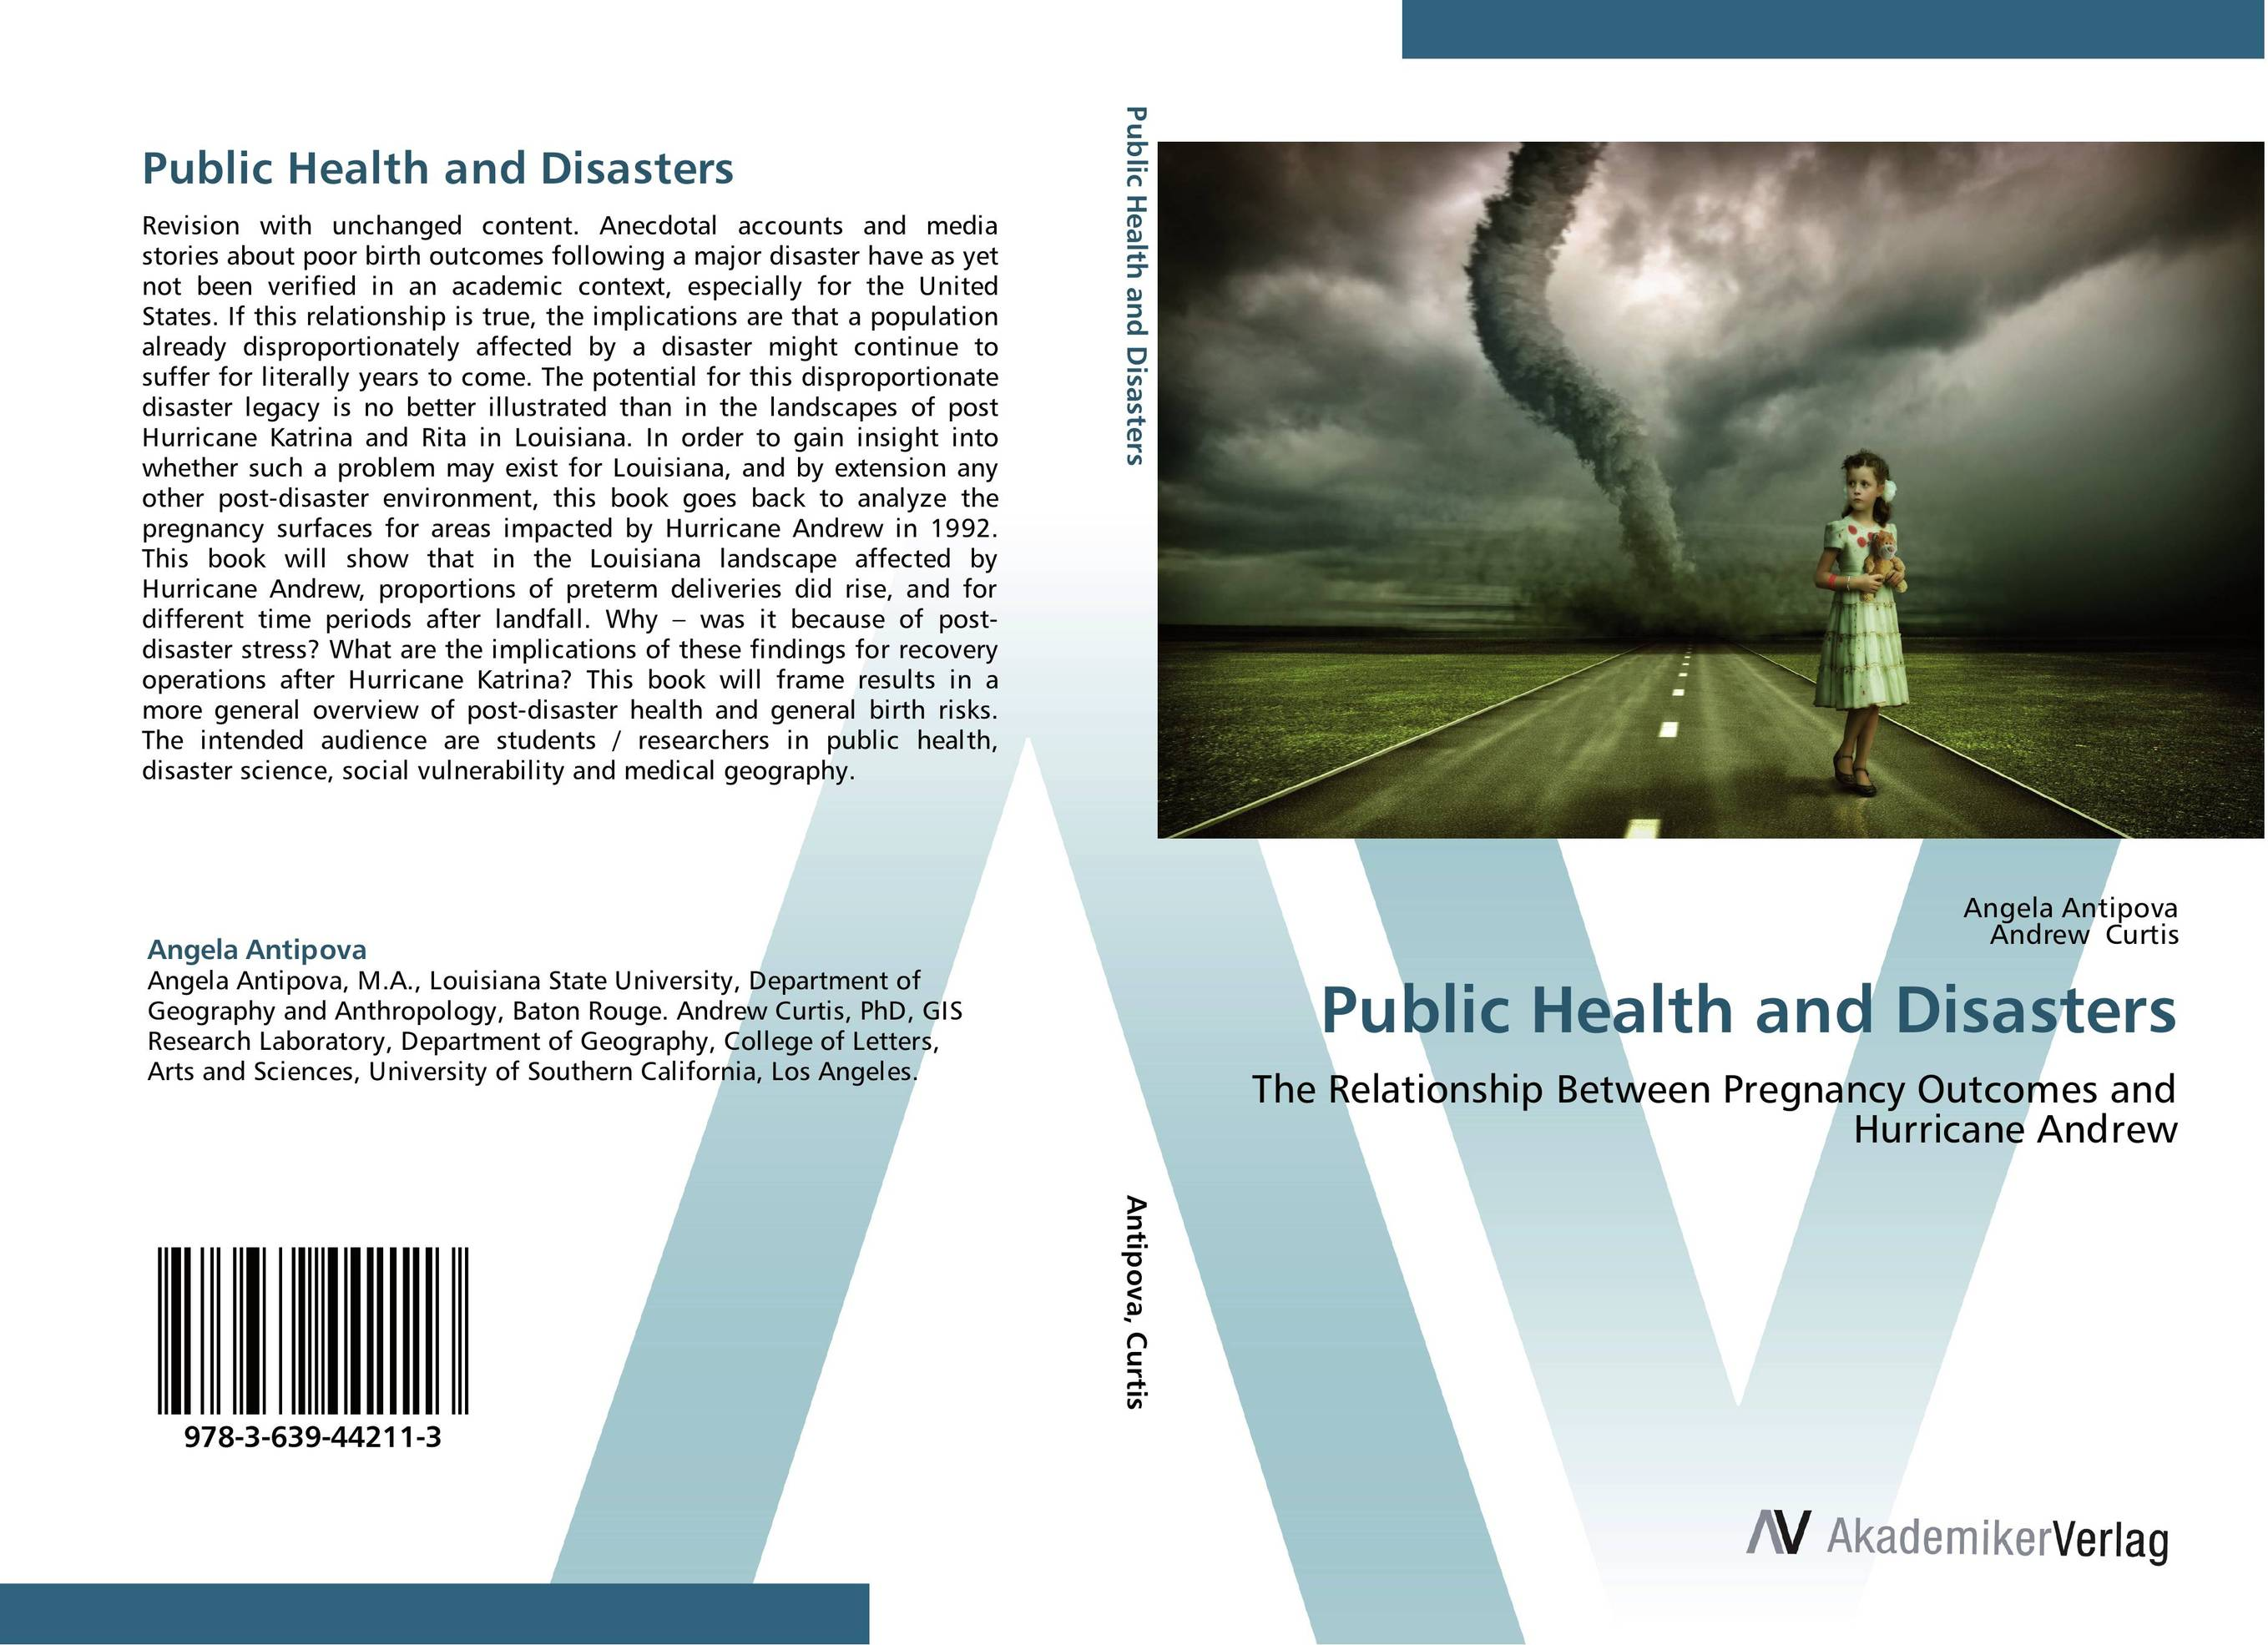 Public Health and Disasters prostate health devices is prostate removal prostatitis mainly for the prostate health and prostatitis health capsule